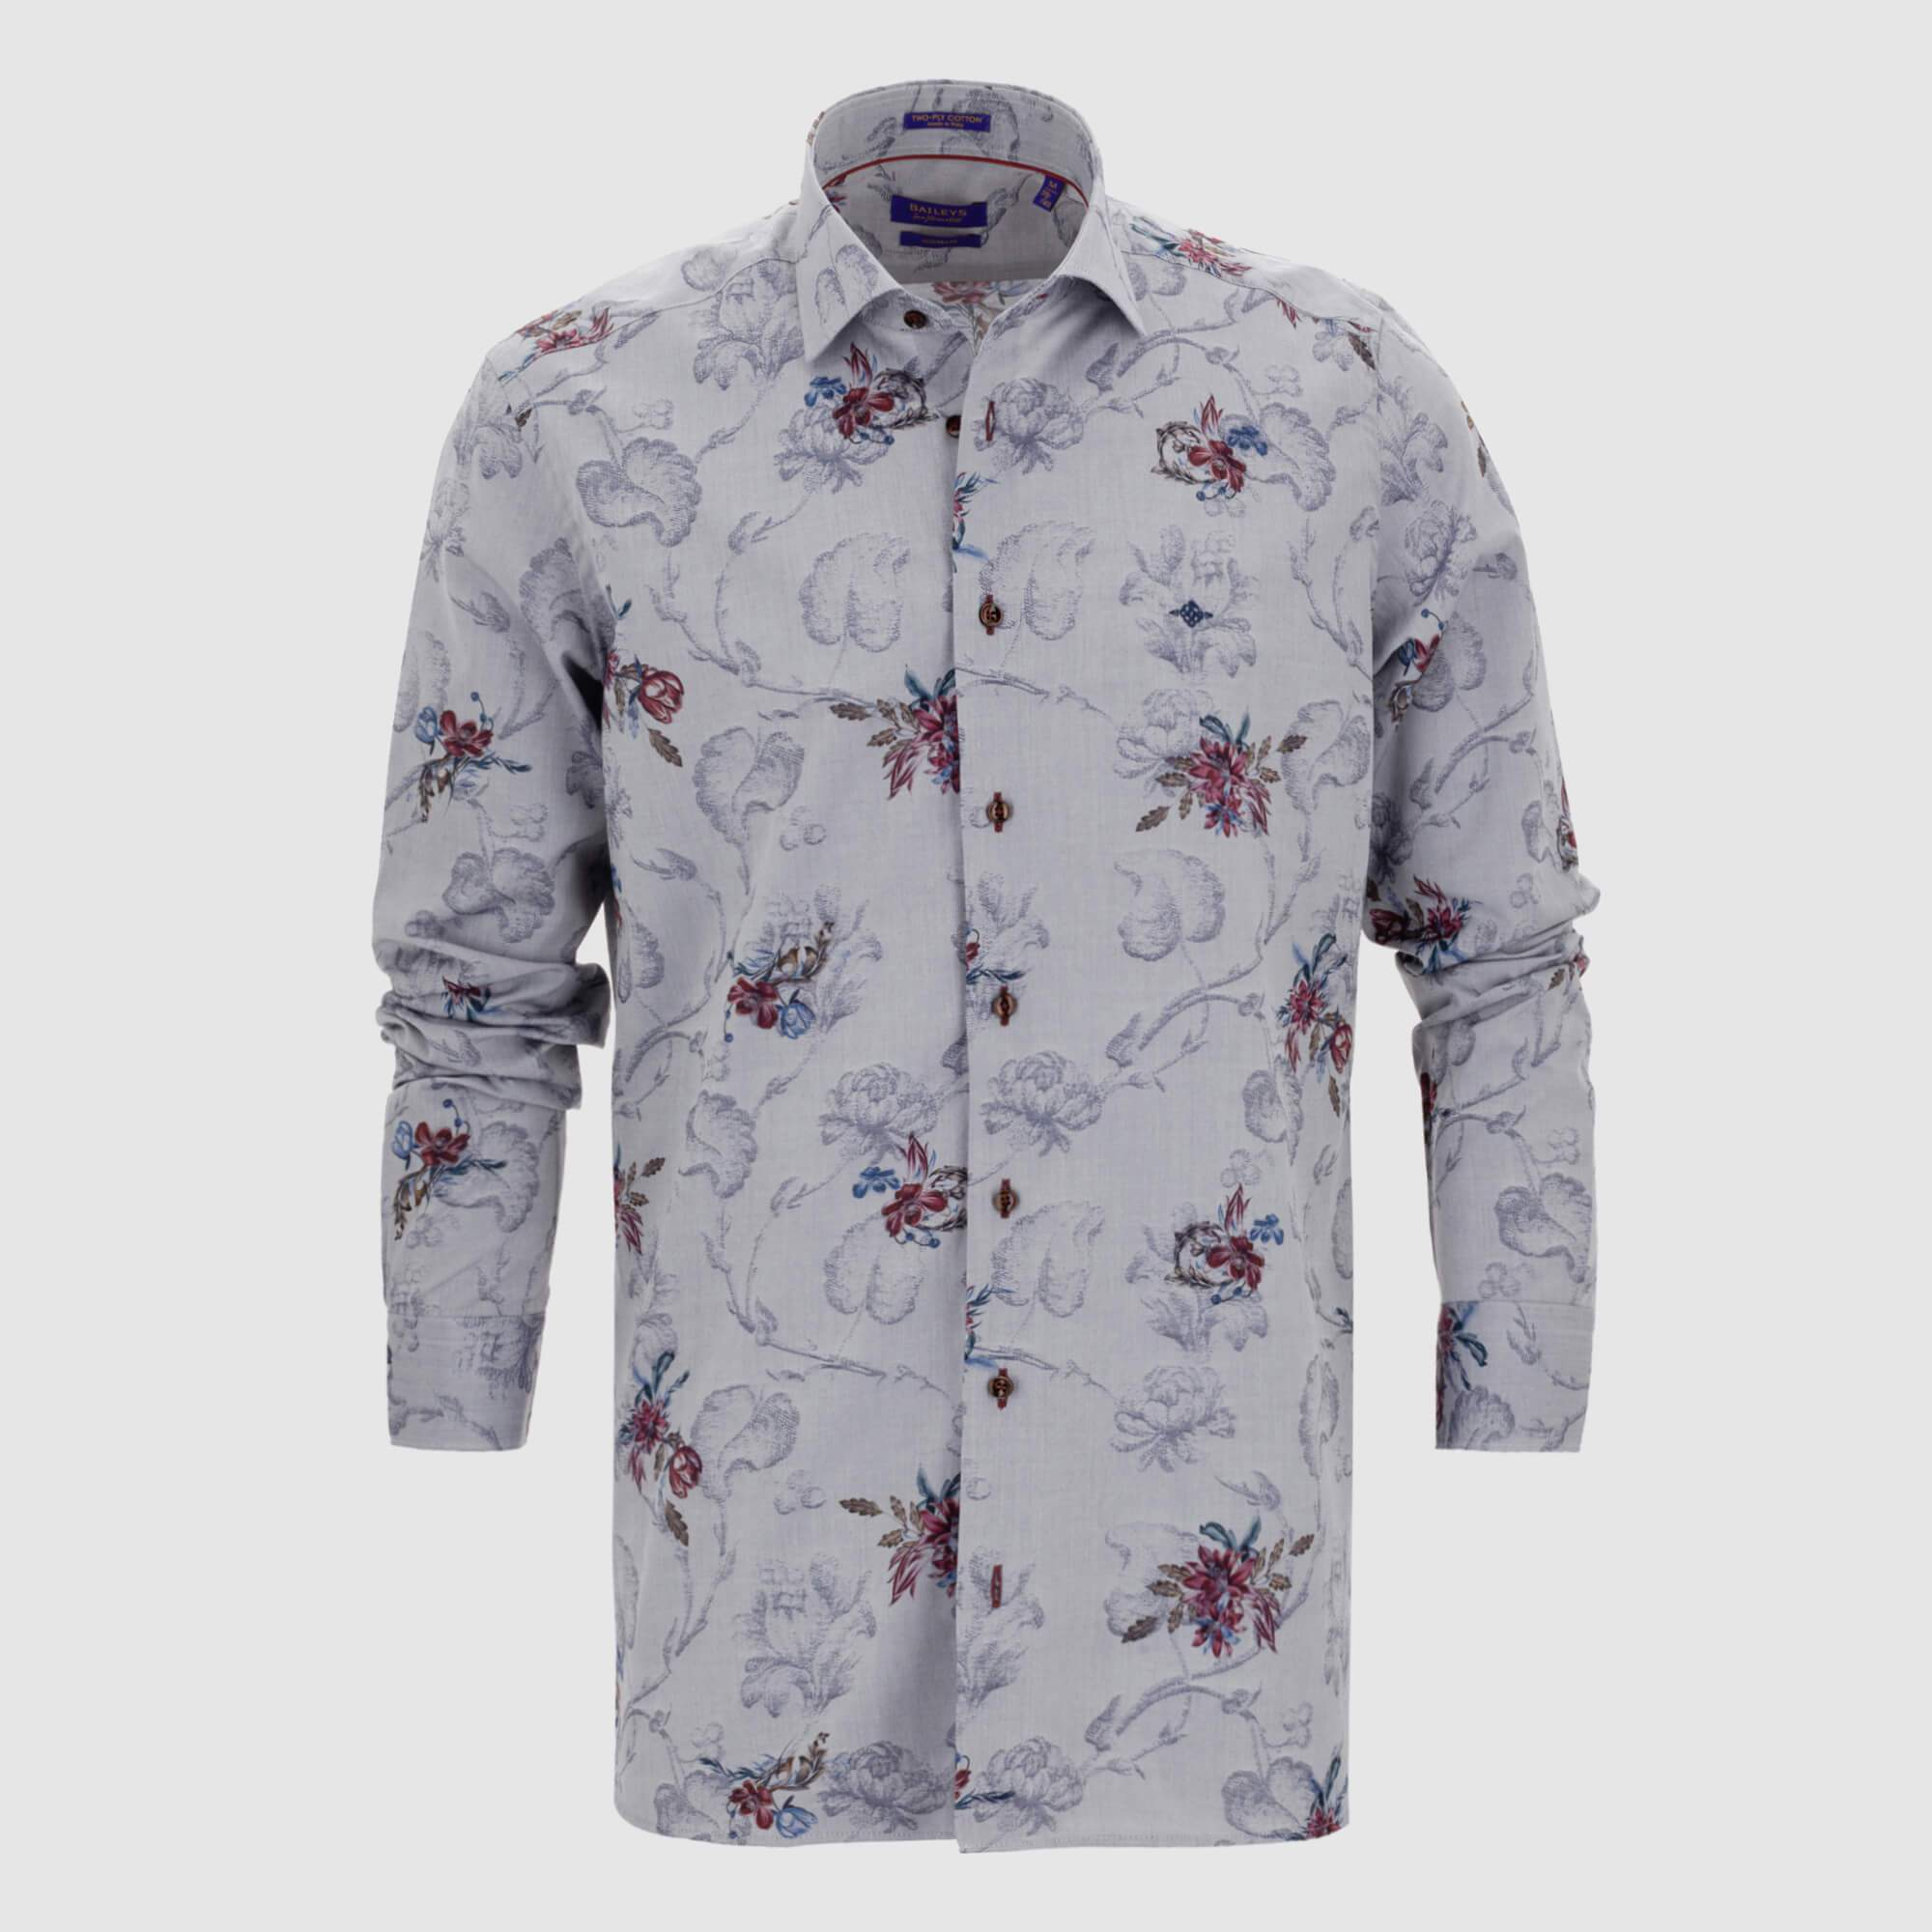 Camisa estampada diseño exclusivo slim fit 927846